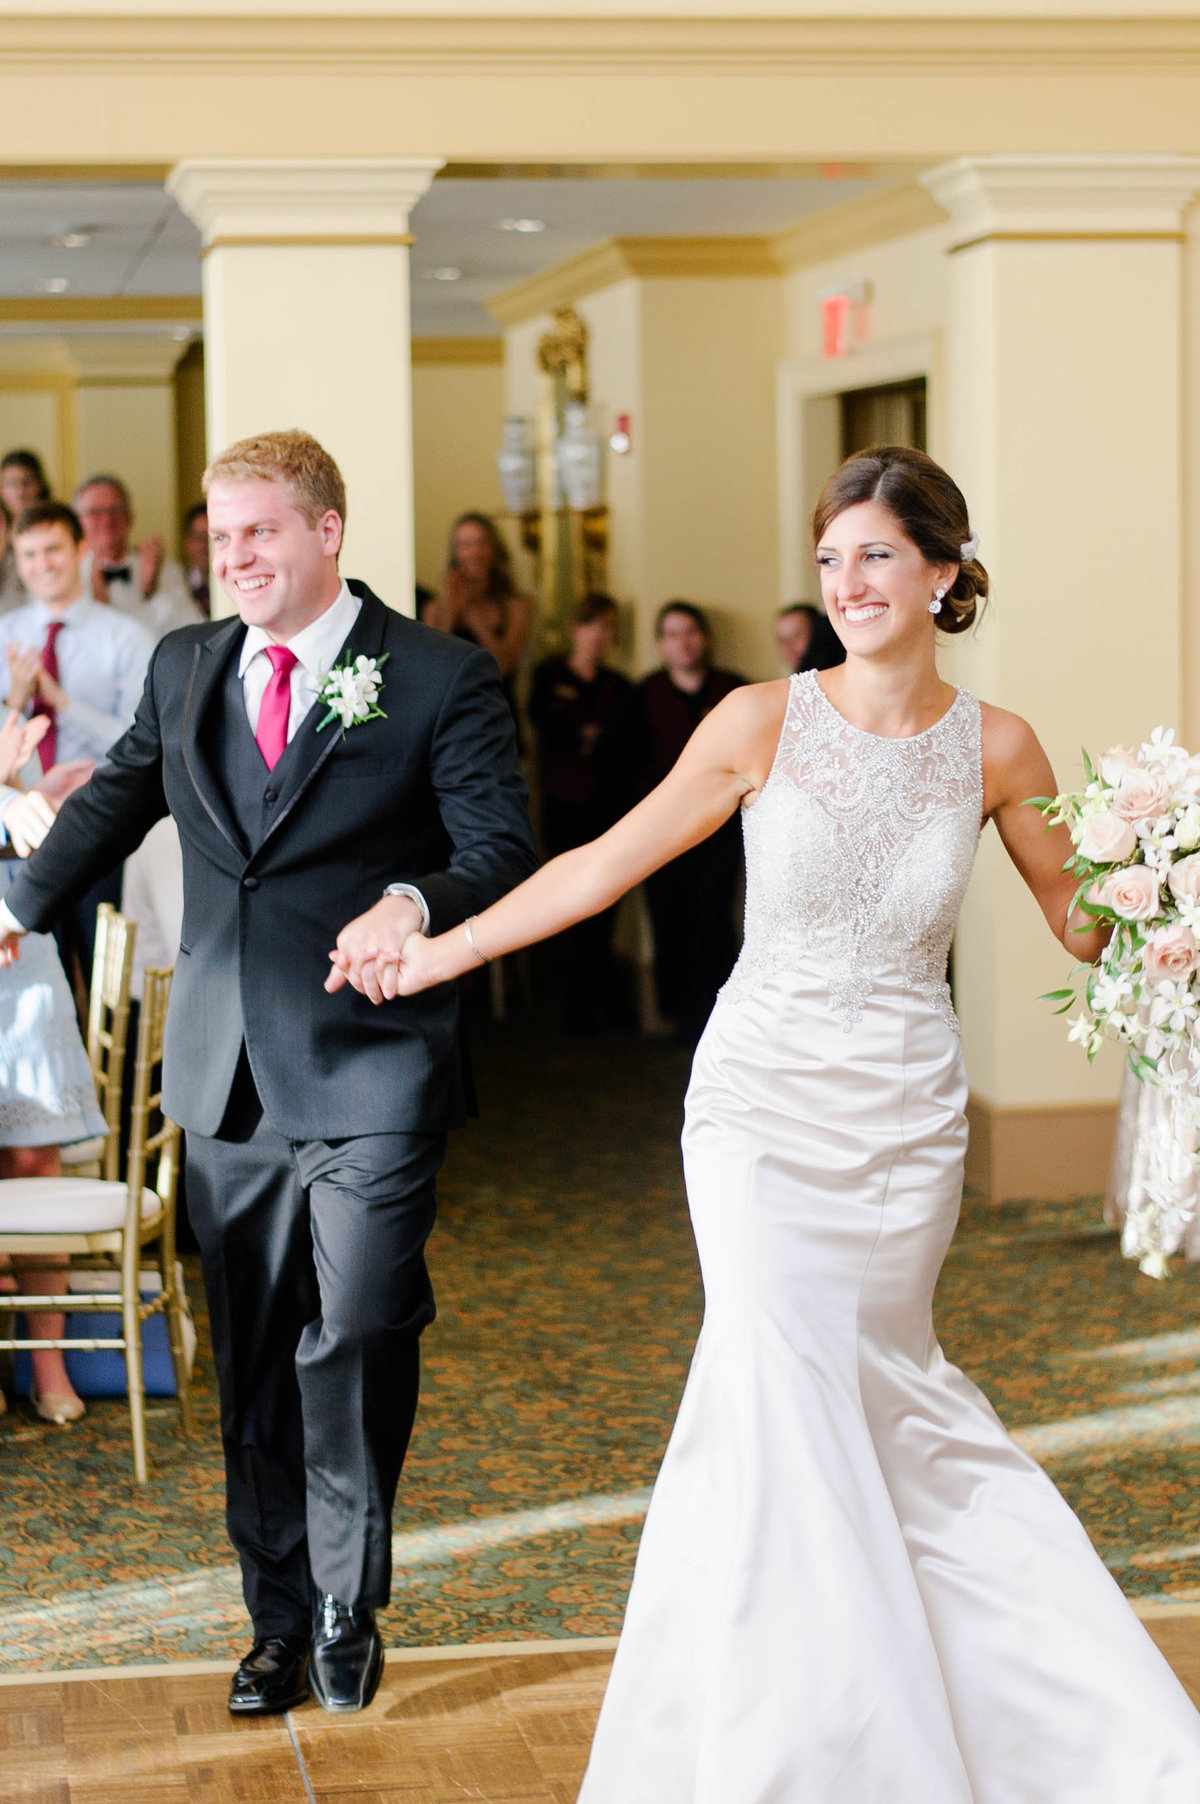 MB-valleybrooke-country-club-wedding-photos-129